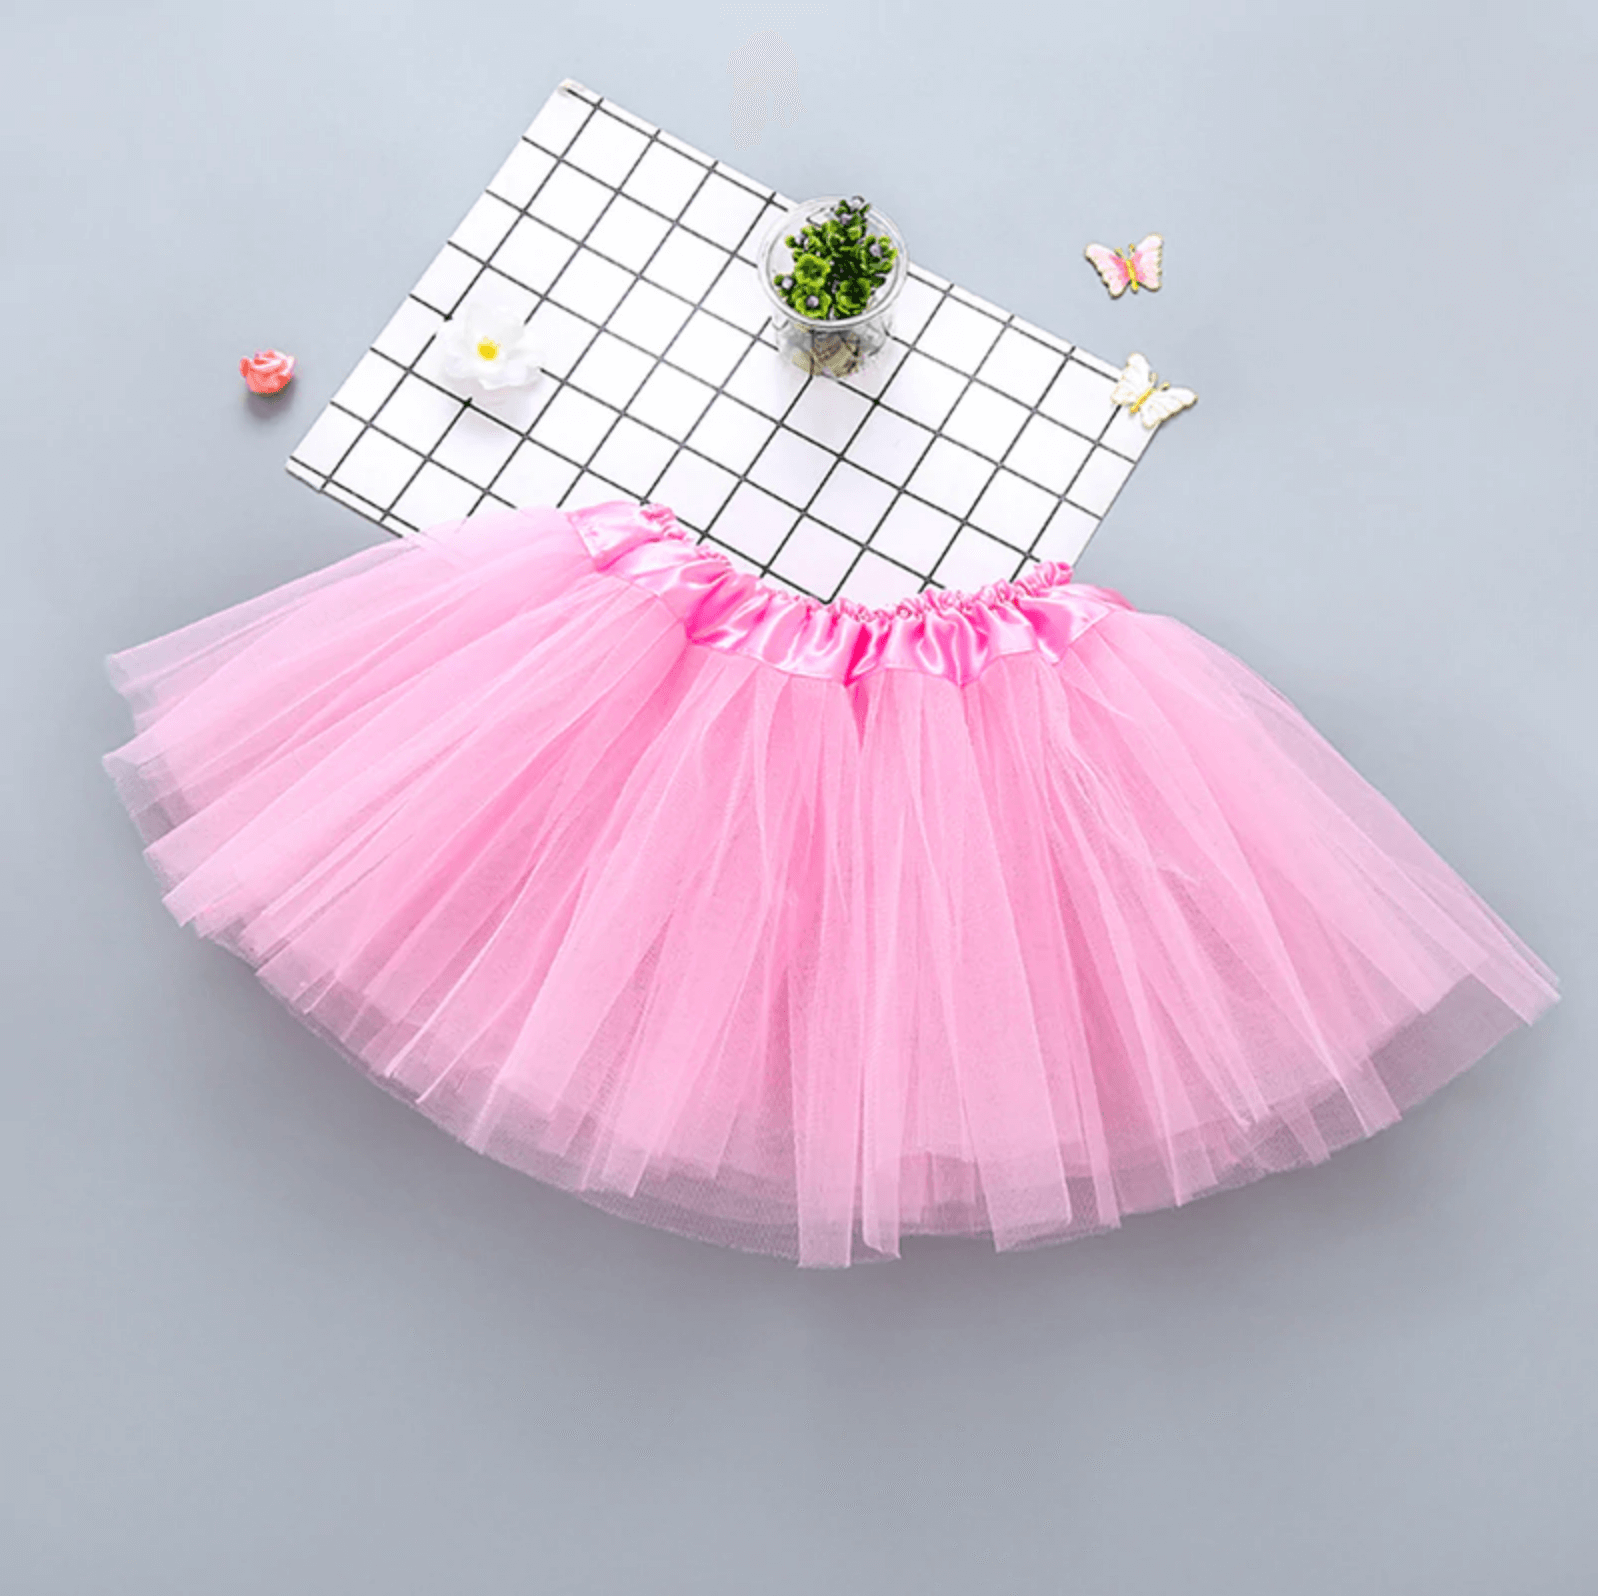 Basic Tutu - Light Pink